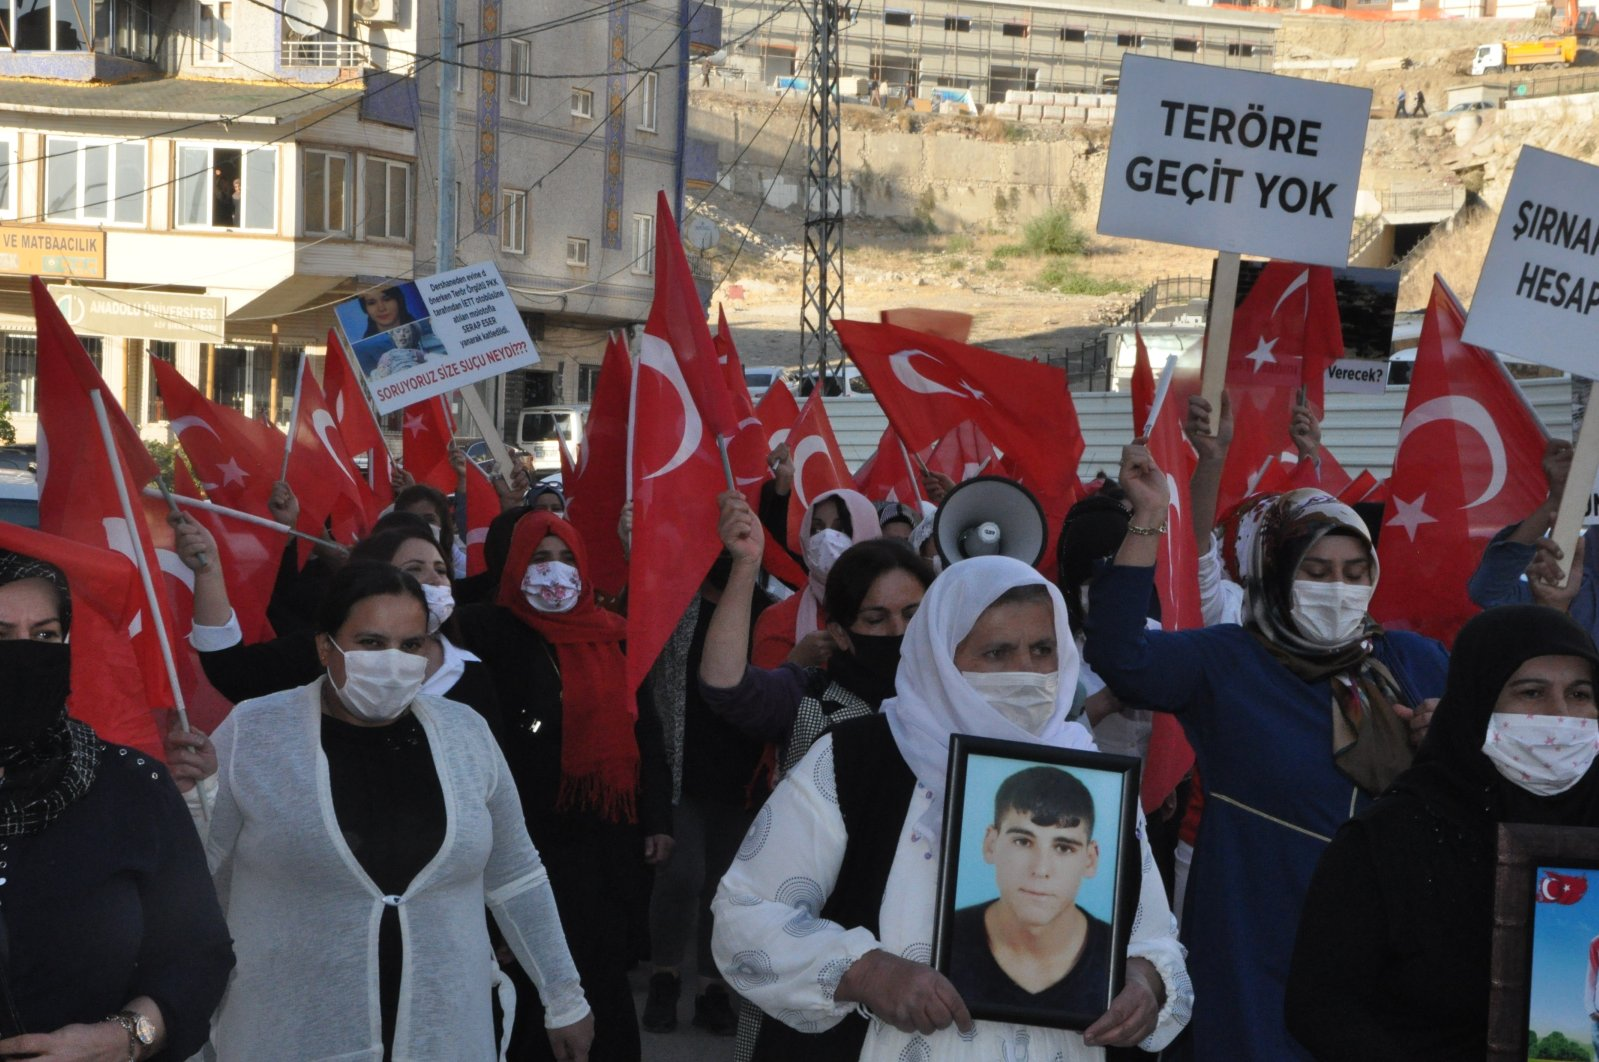 Kurdish mothers stage a march against the PKK terrorists who either abducted or killed their family members in Şırnak, southeastern Turkey, Oct. 16, 2020. (IHA Photo)